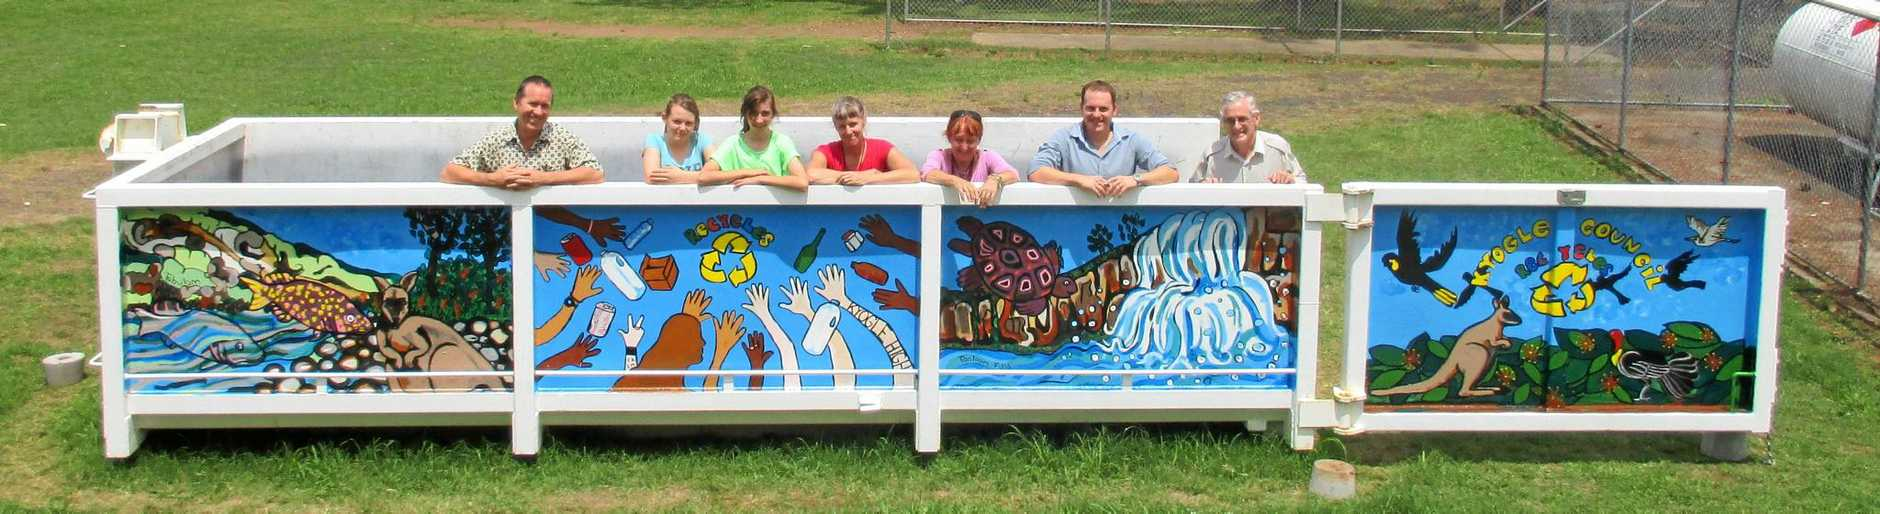 DUMP WASTE LEVY: Kyogle mayor Cr Danielle Mulholland calls on the NSW Premier to dump the waste levy. Here Kyogle High School staff and students join with David Bell and David Bevan of Kyogle Council to admire the new artwork on the recycling skip bin.